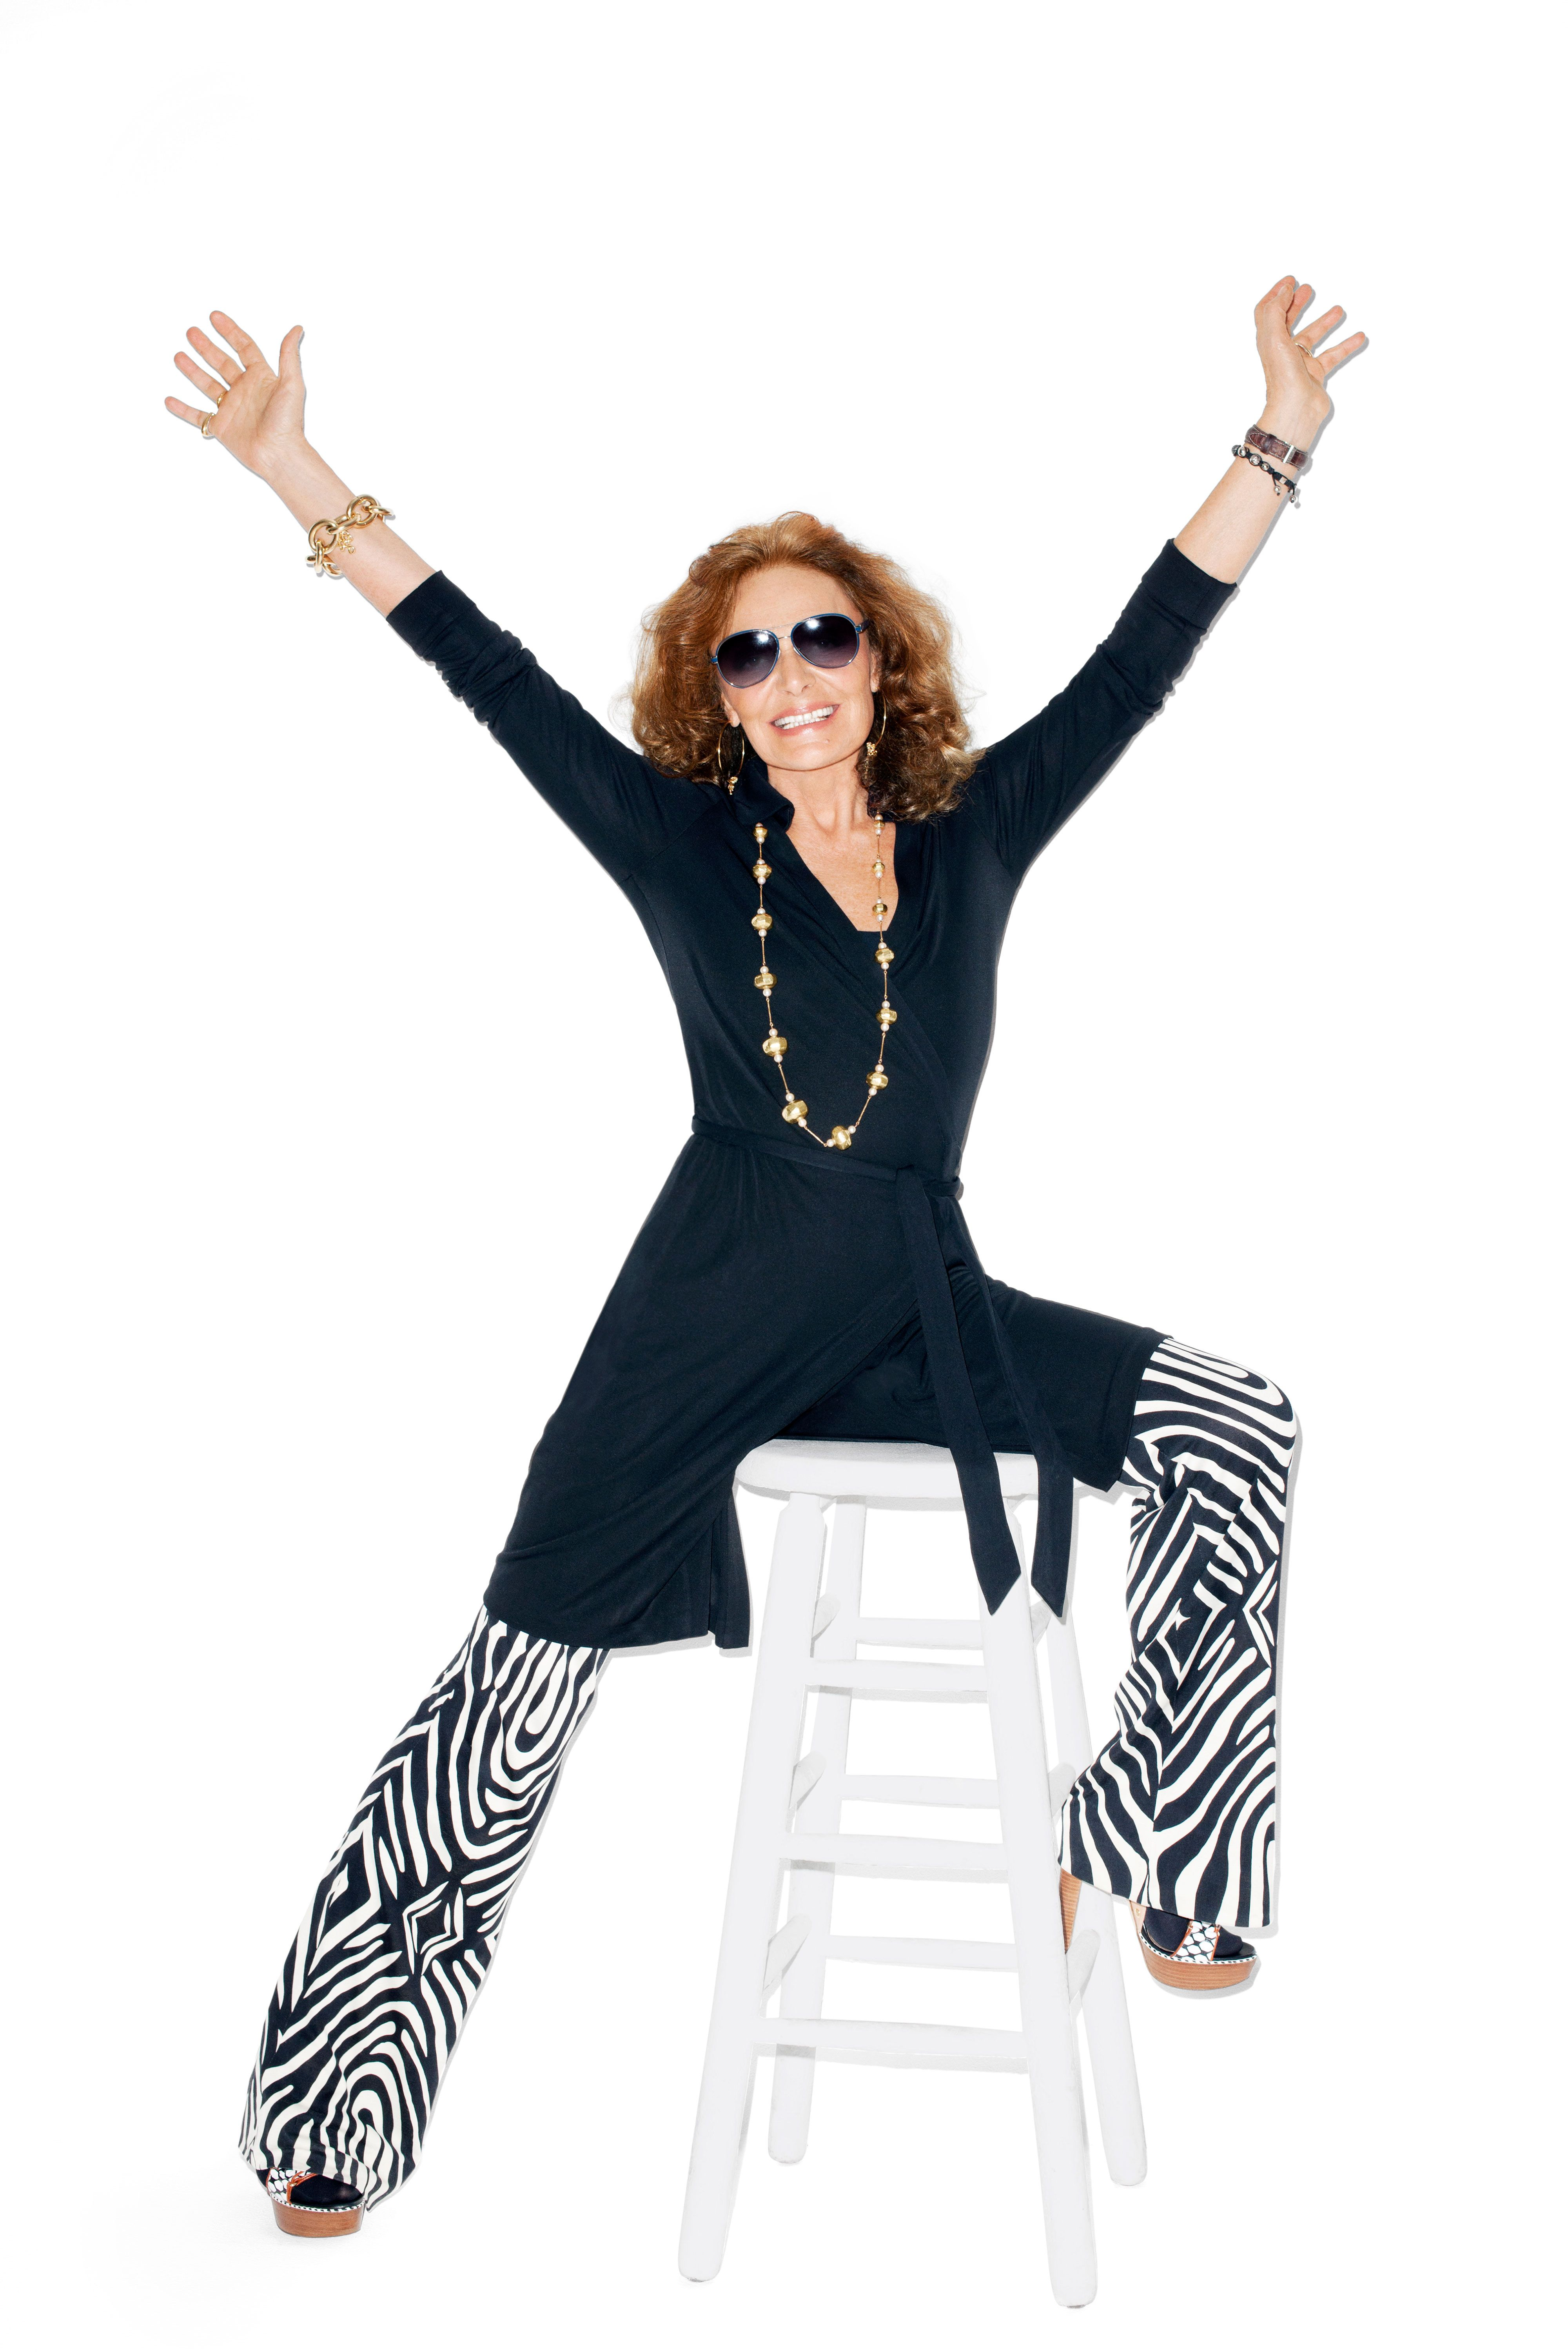 Diane von Furstenberg's Wrap Dress Turns 40 - Diane von Furstenberg Wrap Dress Anniversary - Harper's BAZAAR Magazine